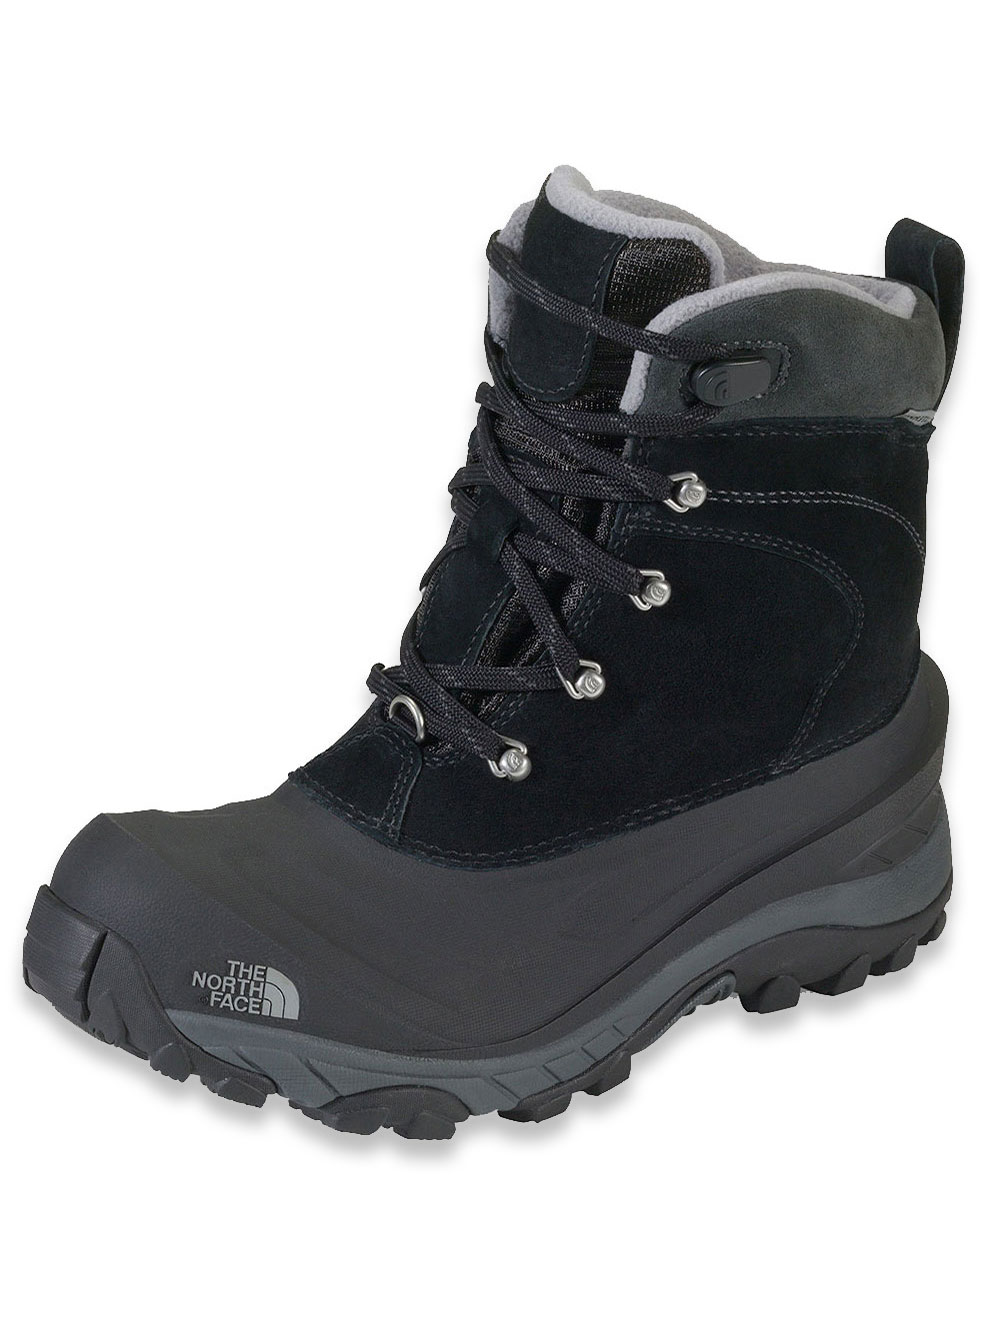 The North Face Boys' Chilkat II Boot (Youth Sizes 8 - 12) - black/griffin gray, 12 youth